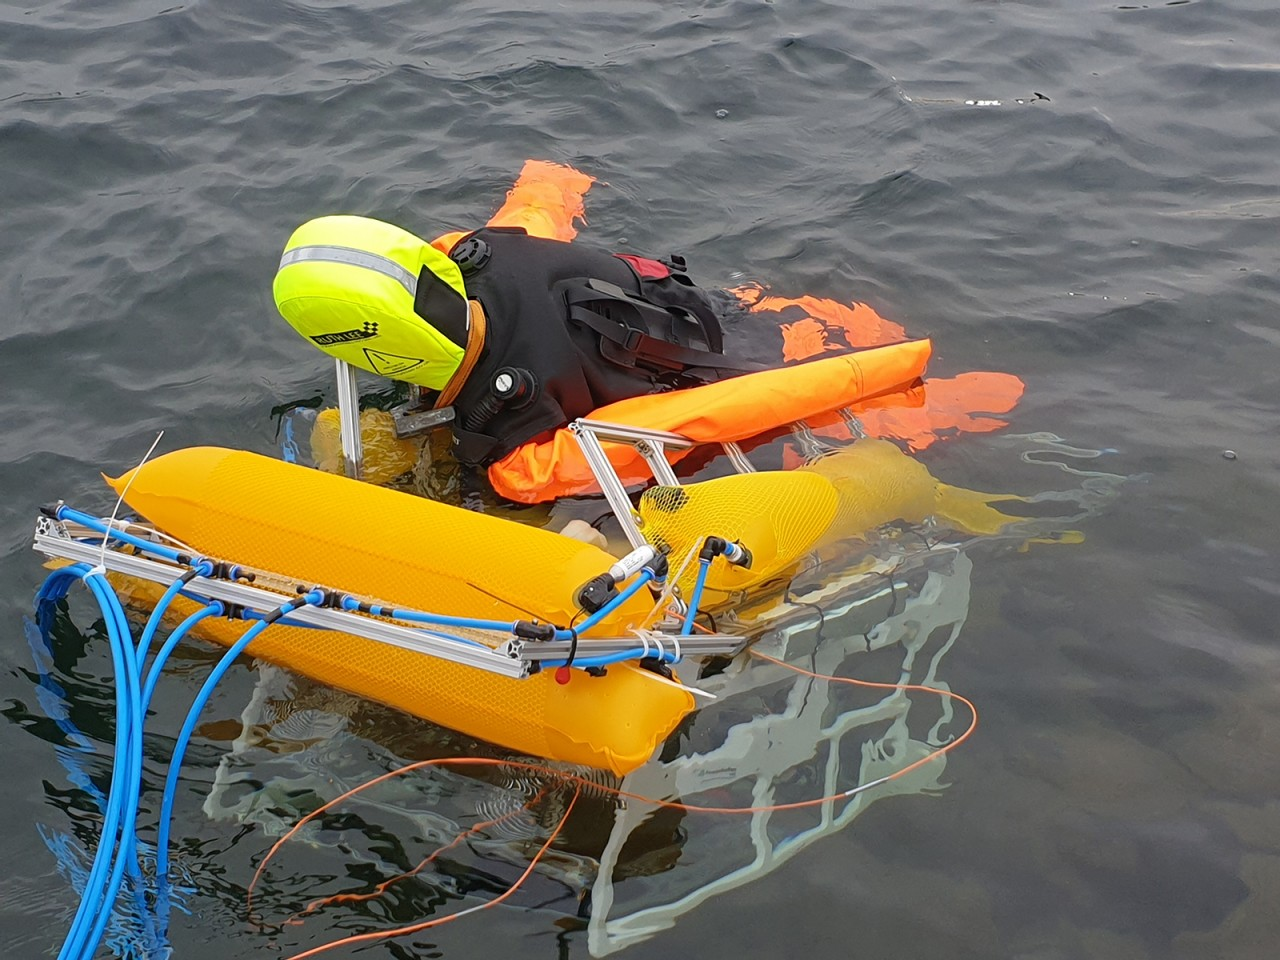 The robot transports the dummy to shore